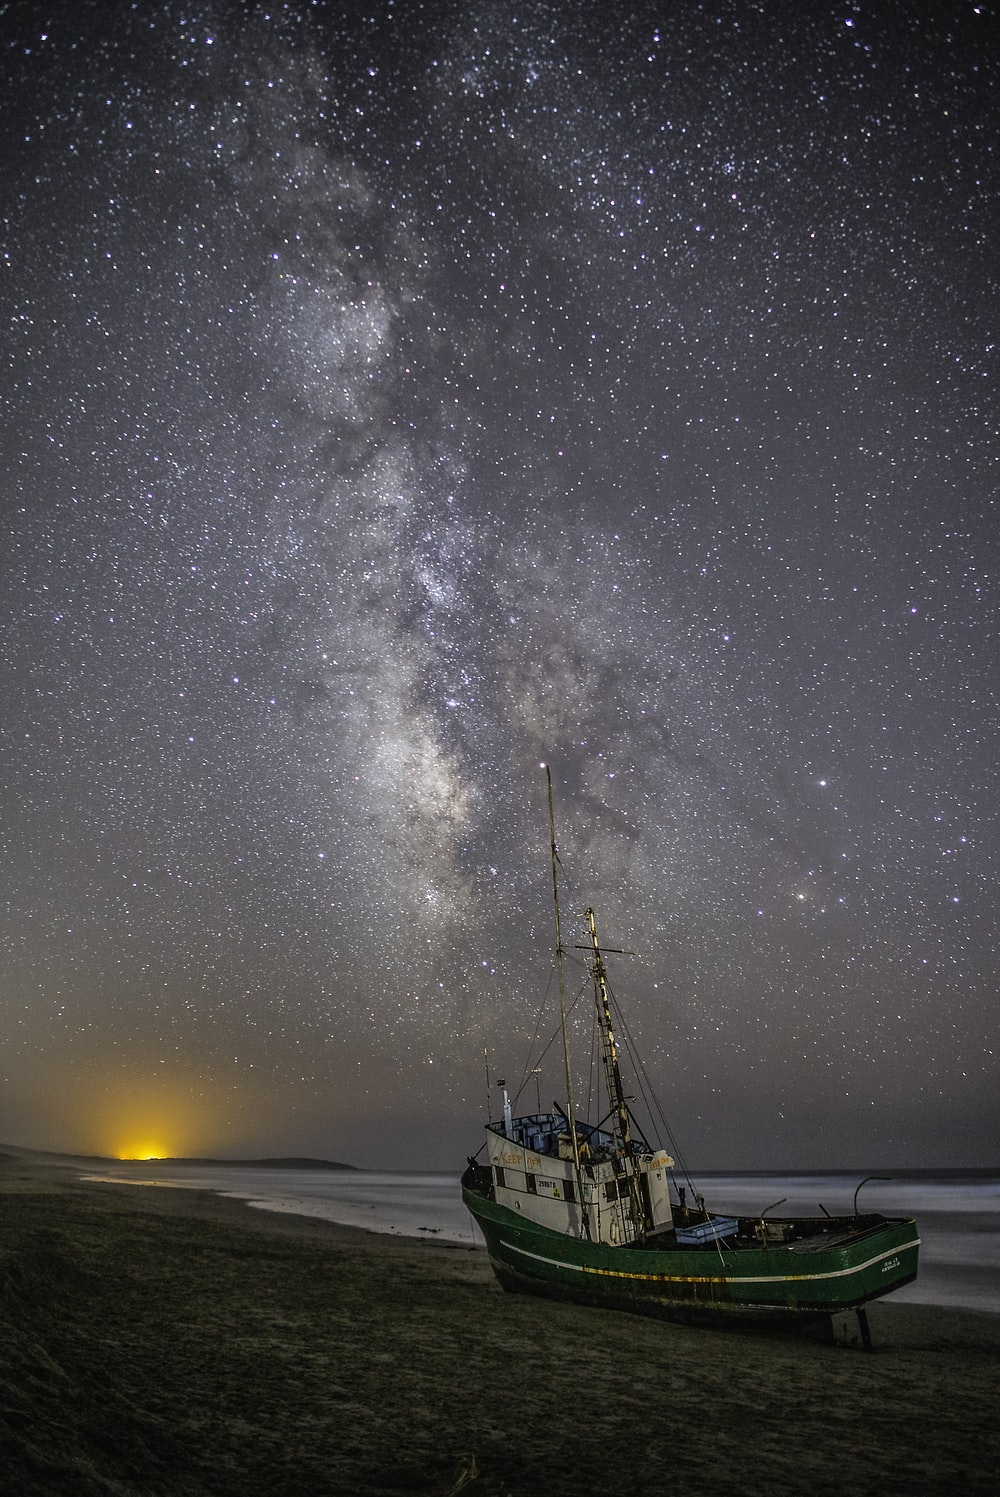 green and white fishing boat on gray sand under white and gray sky